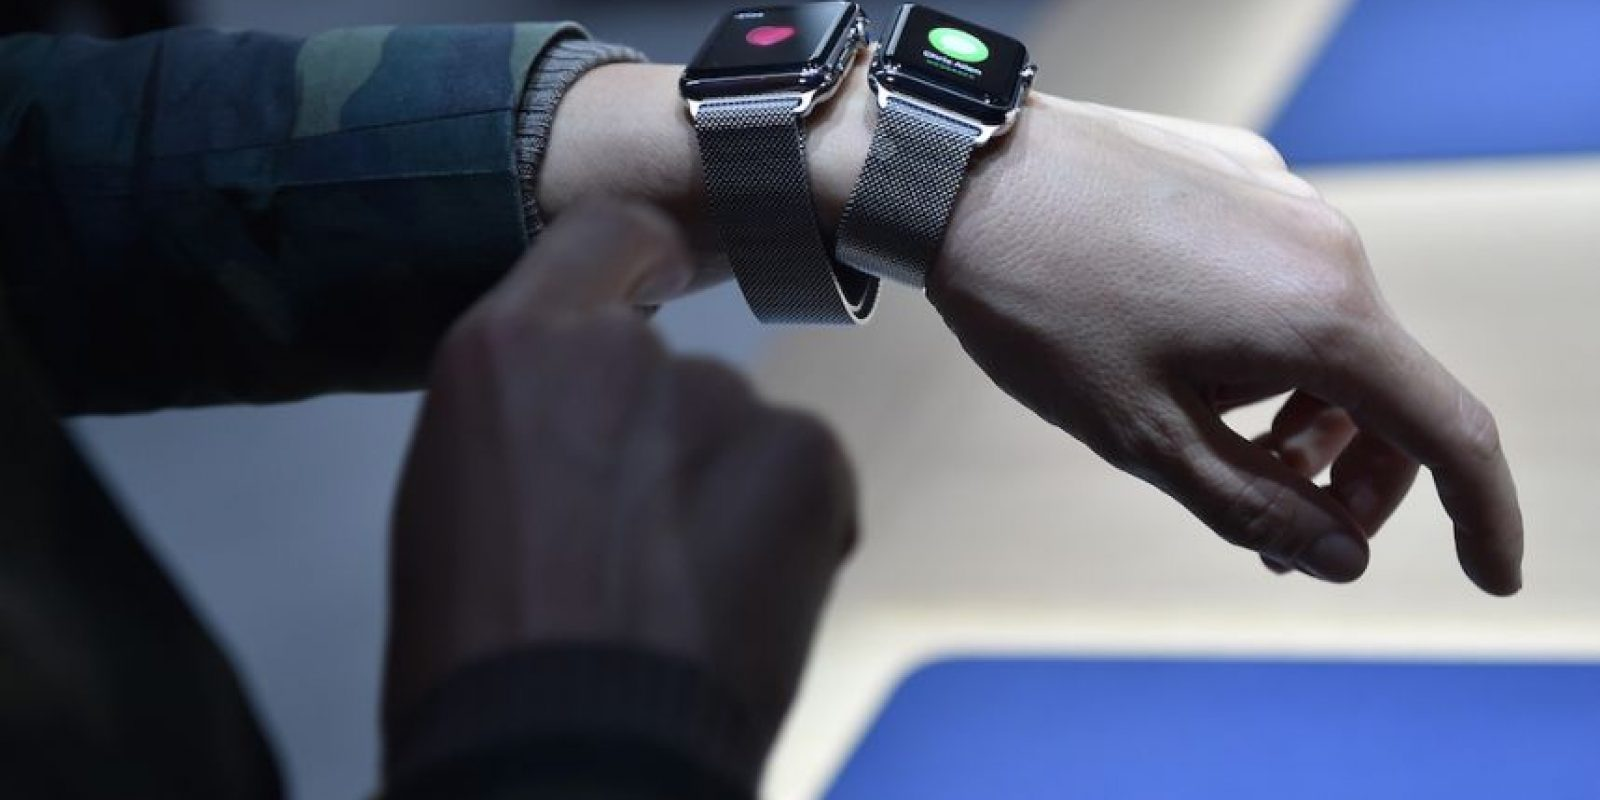 Apple Watch se vende actualmente en solo nueve países. Foto: Getty Images